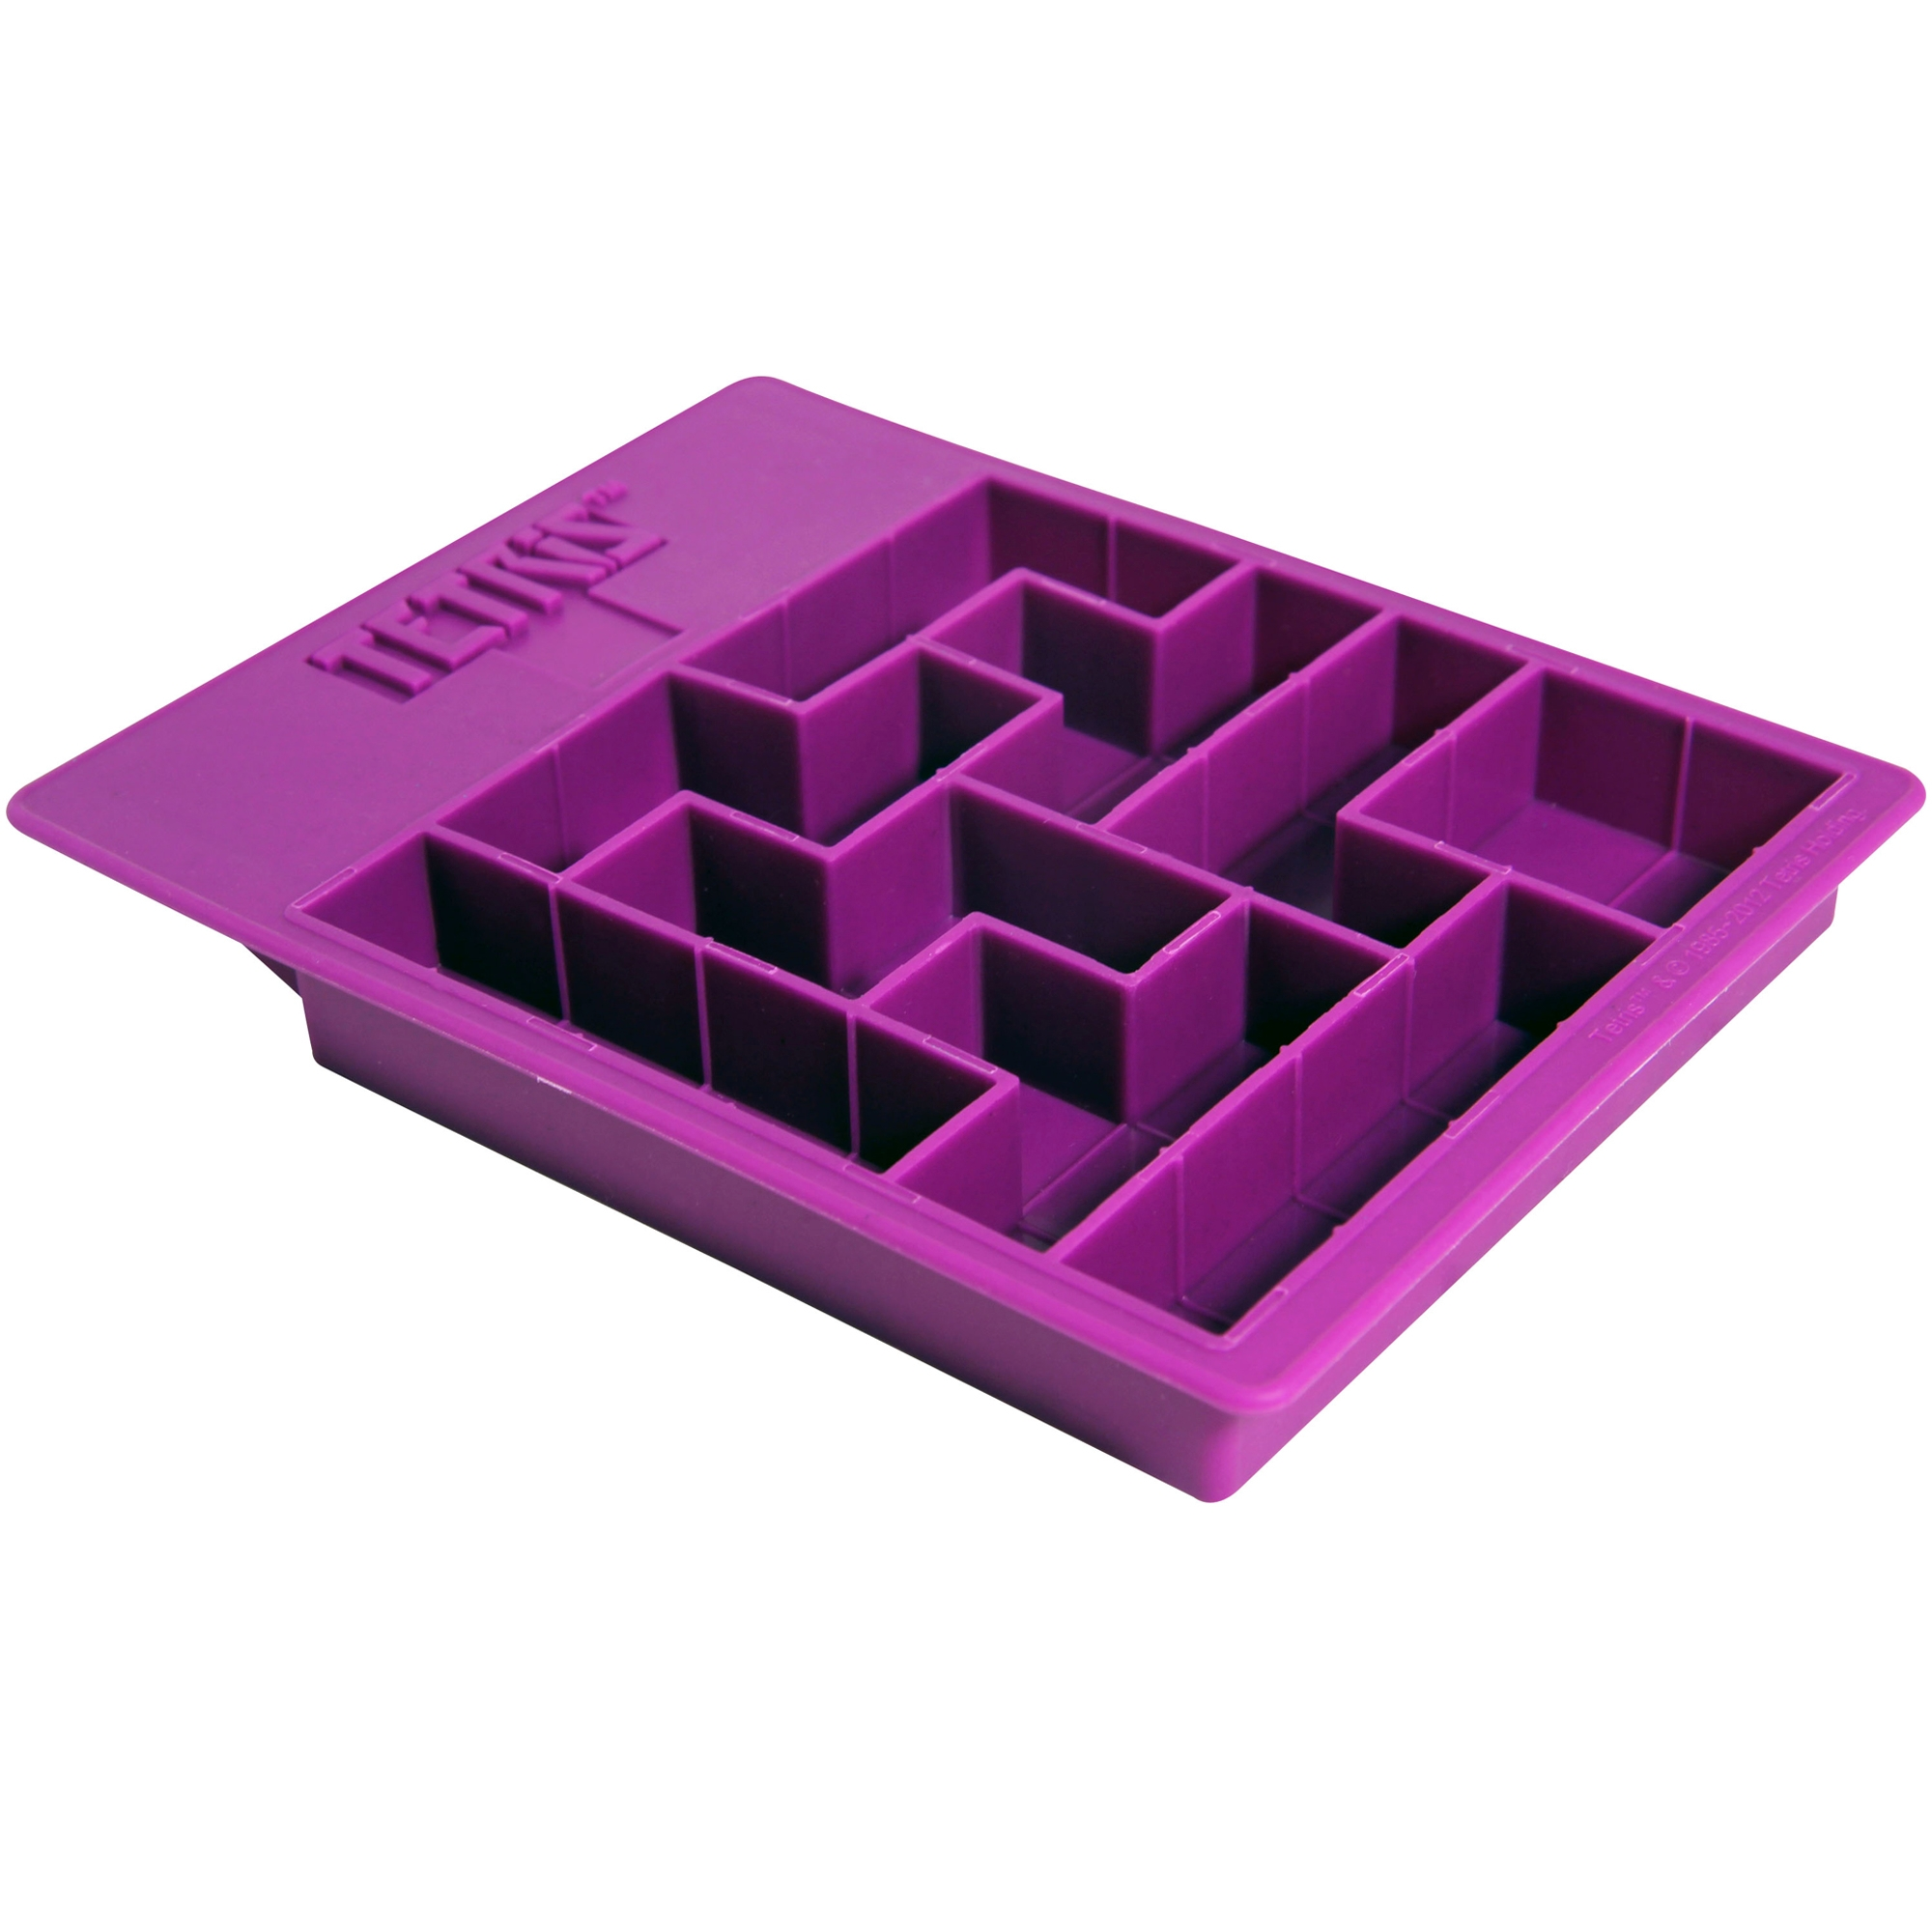 Alternative photo: Tetris Ice Cube Tray